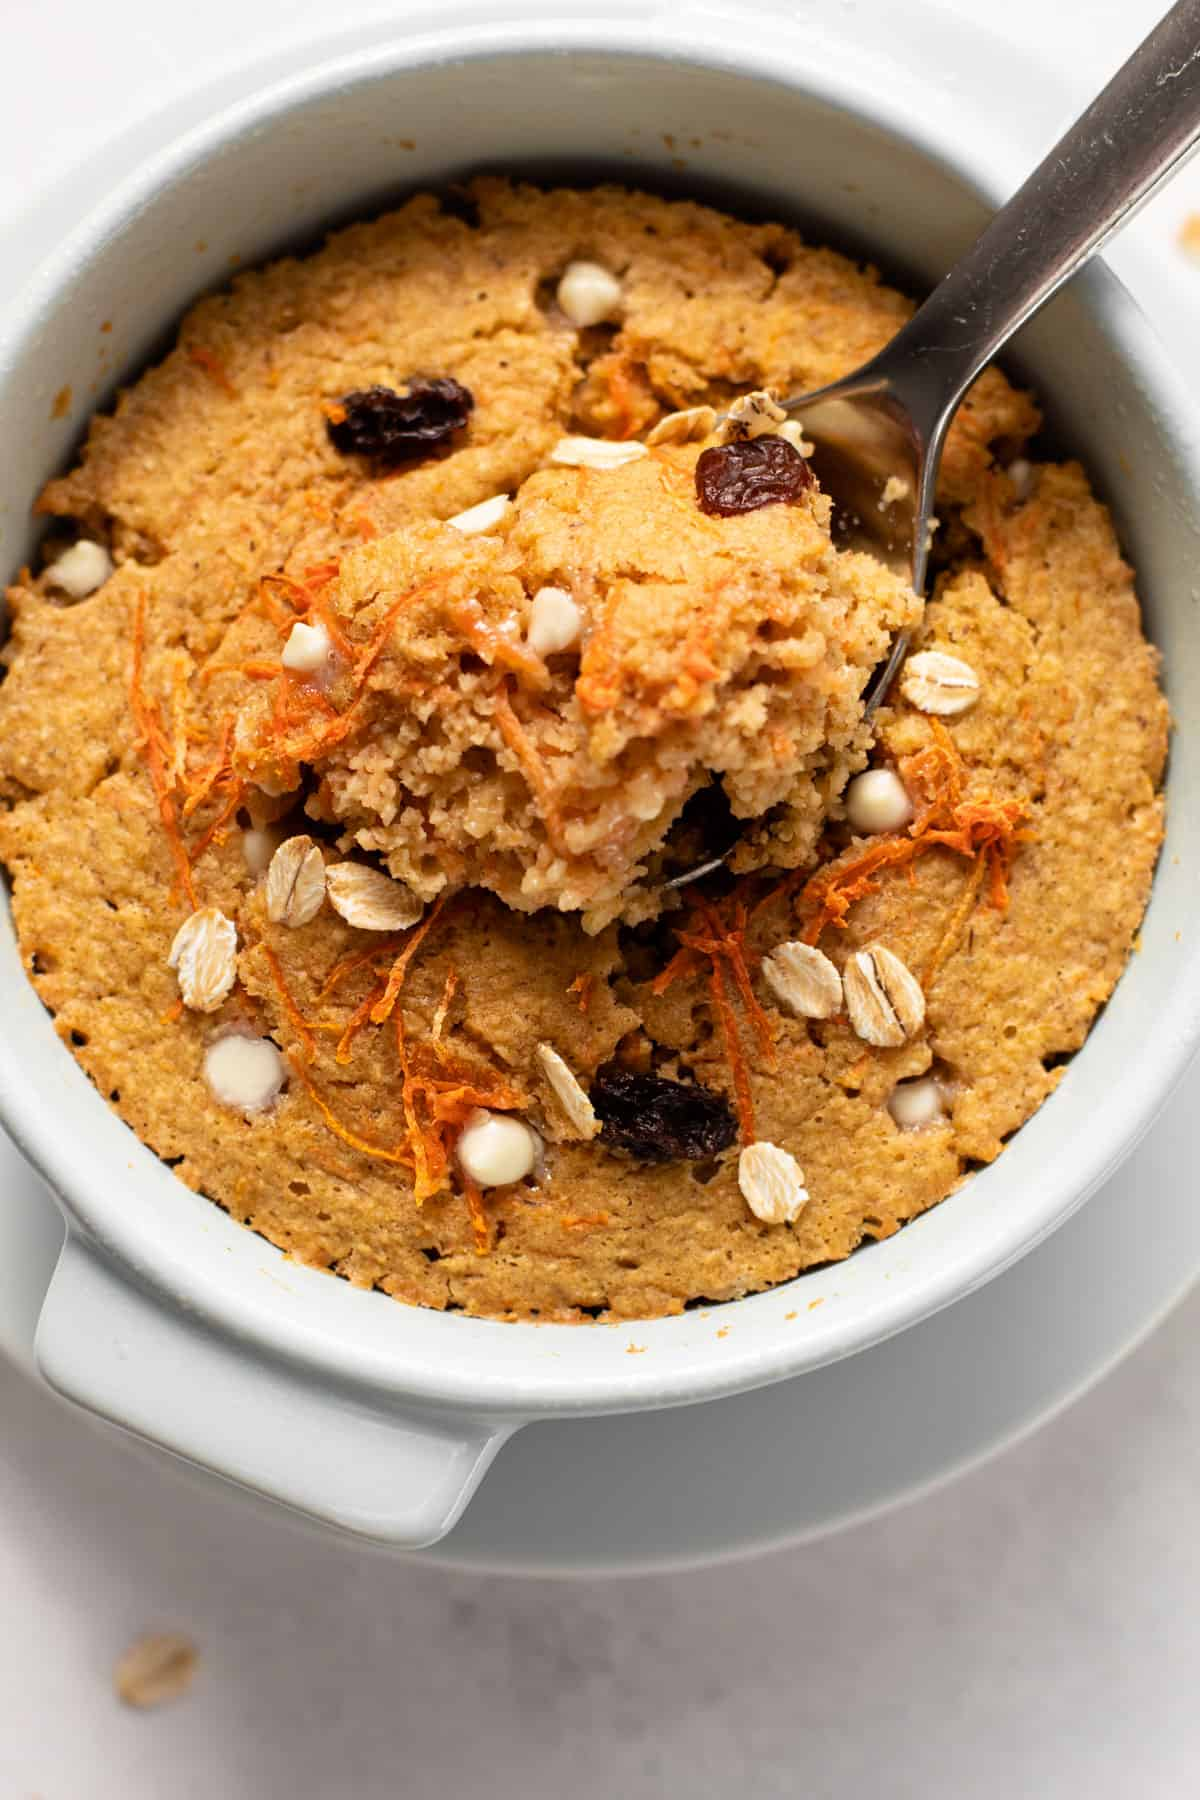 Baked blended oats with carrots and raisins.